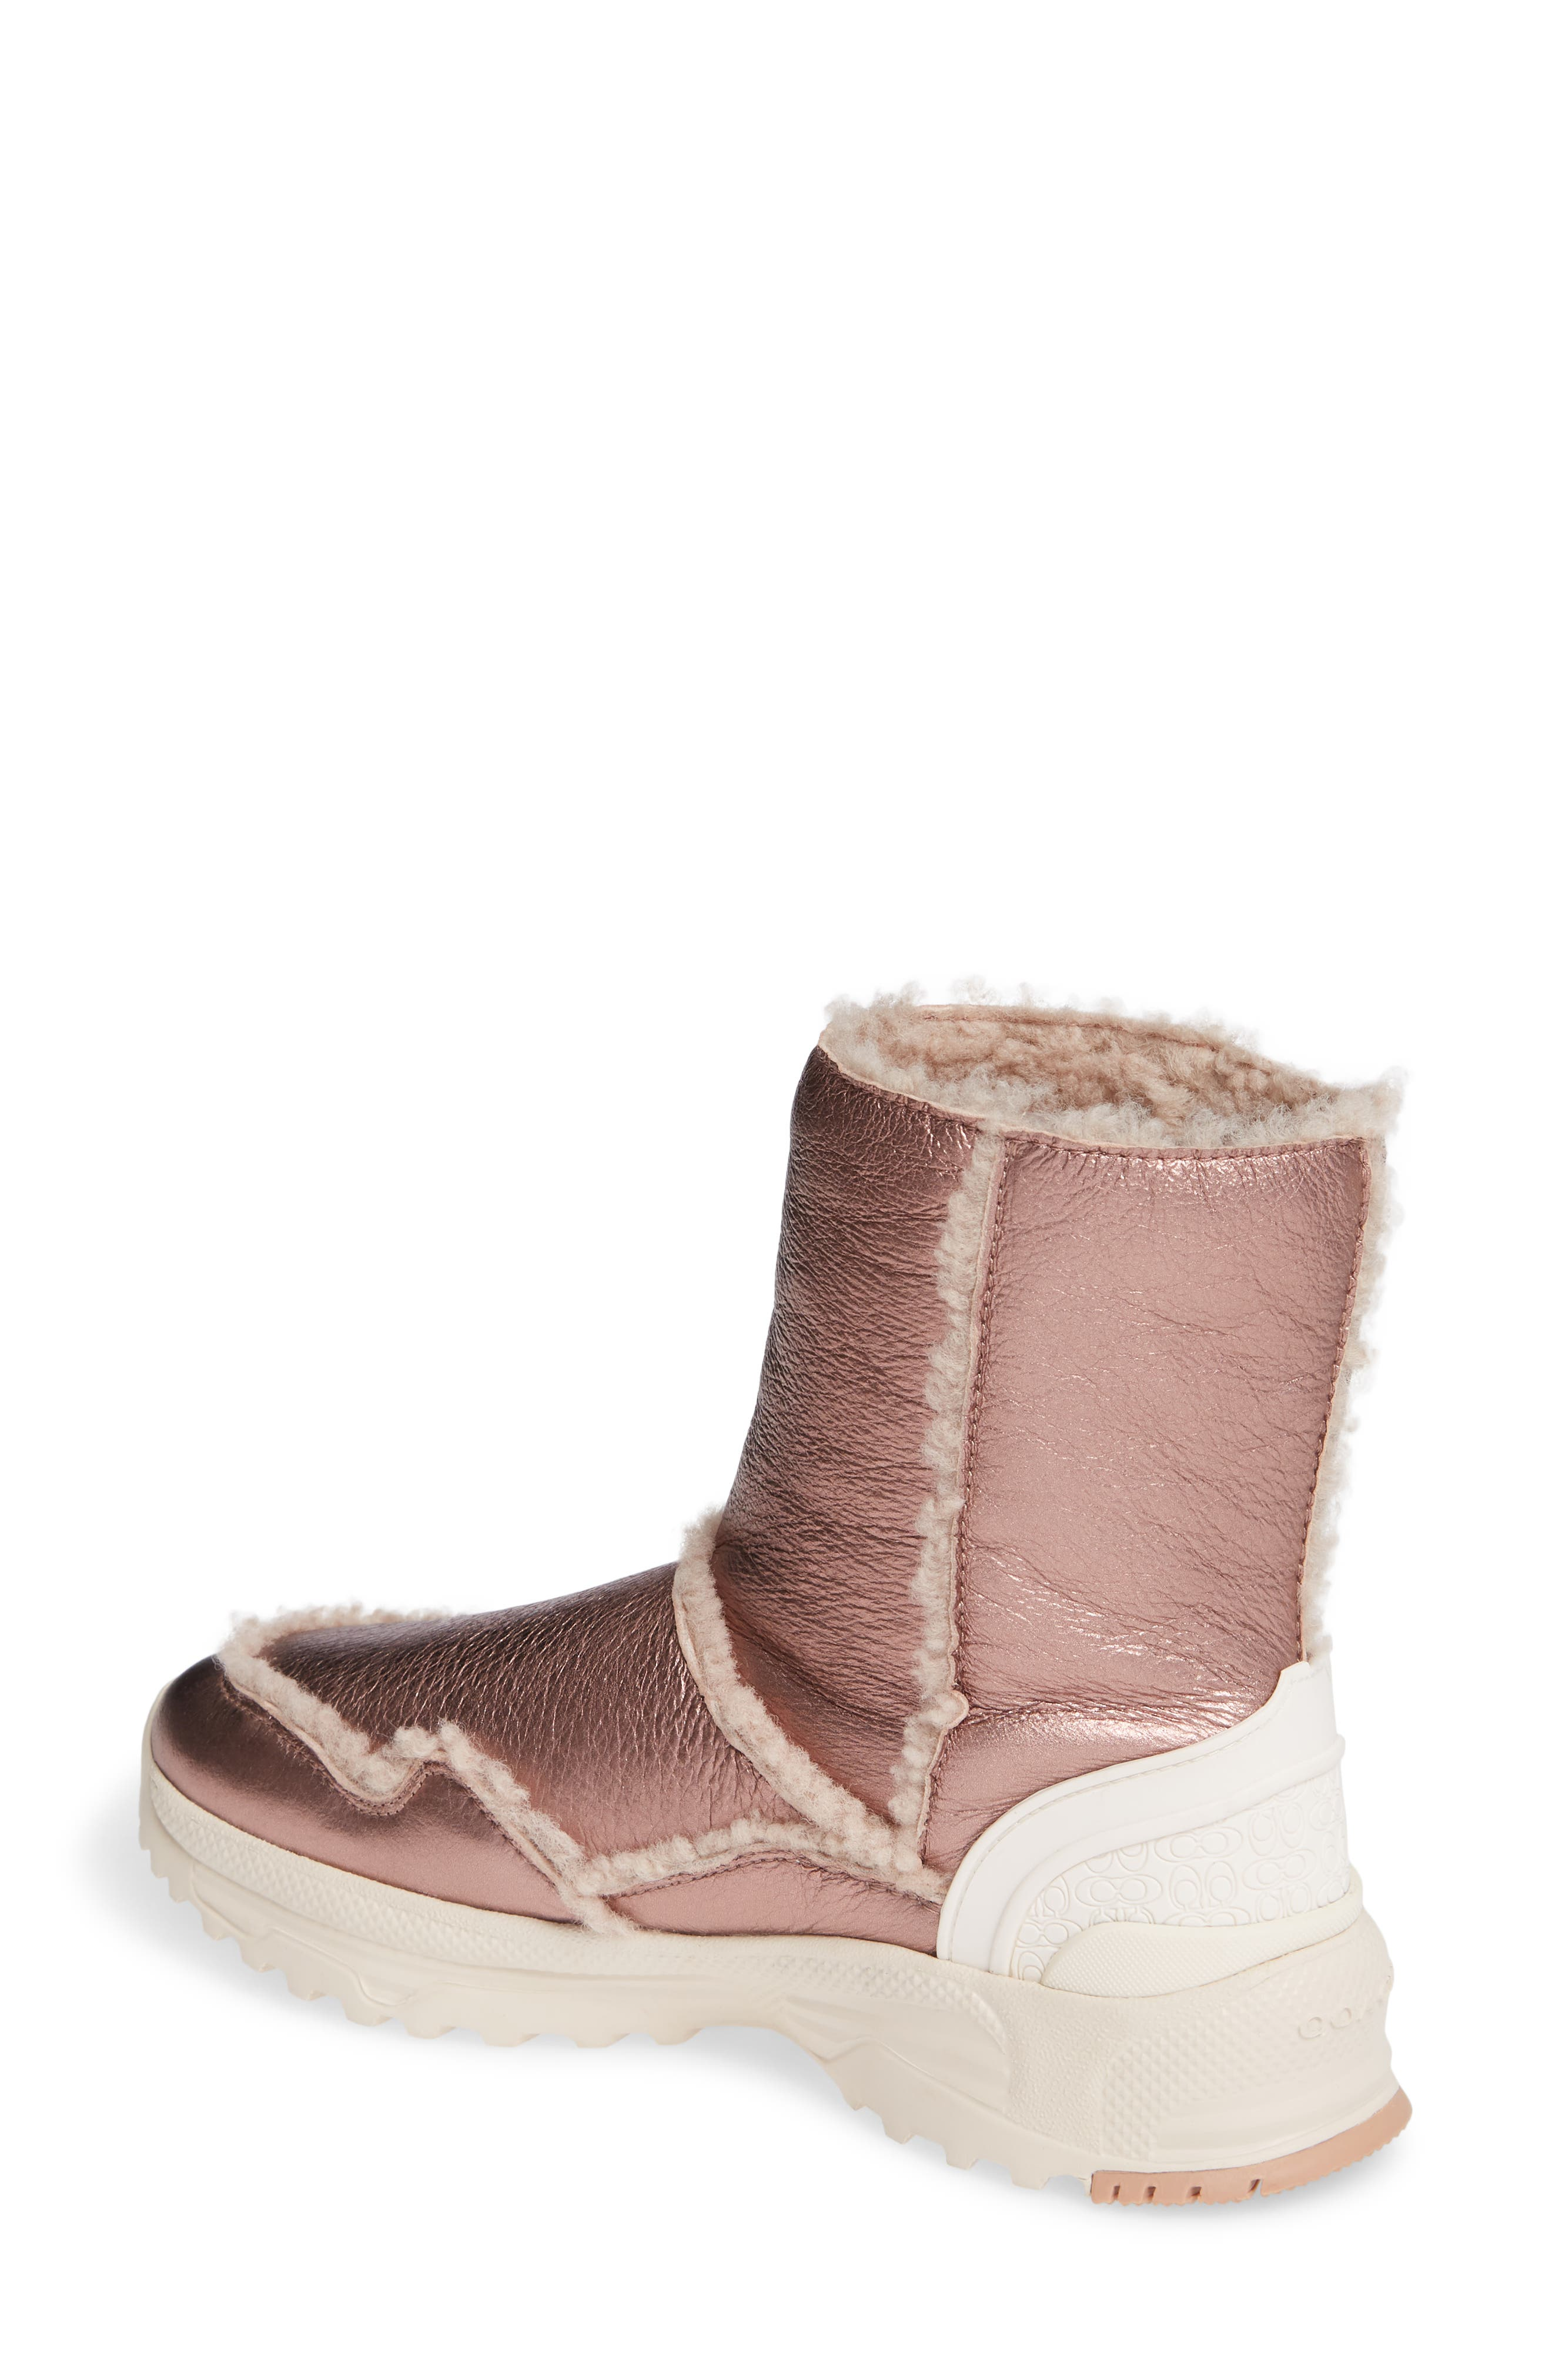 COACH,                             Portia Genuine Shearling Bootie,                             Alternate thumbnail 2, color,                             PINK